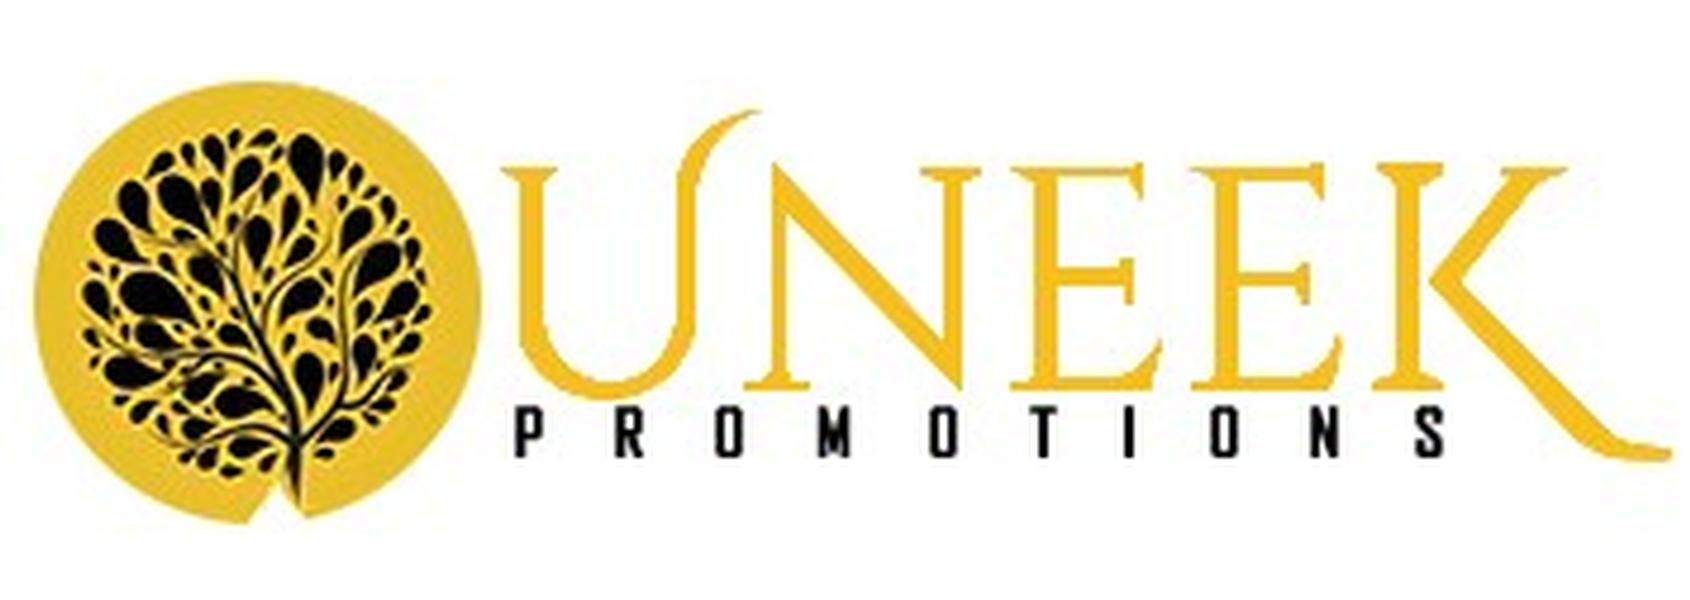 uneek promotions